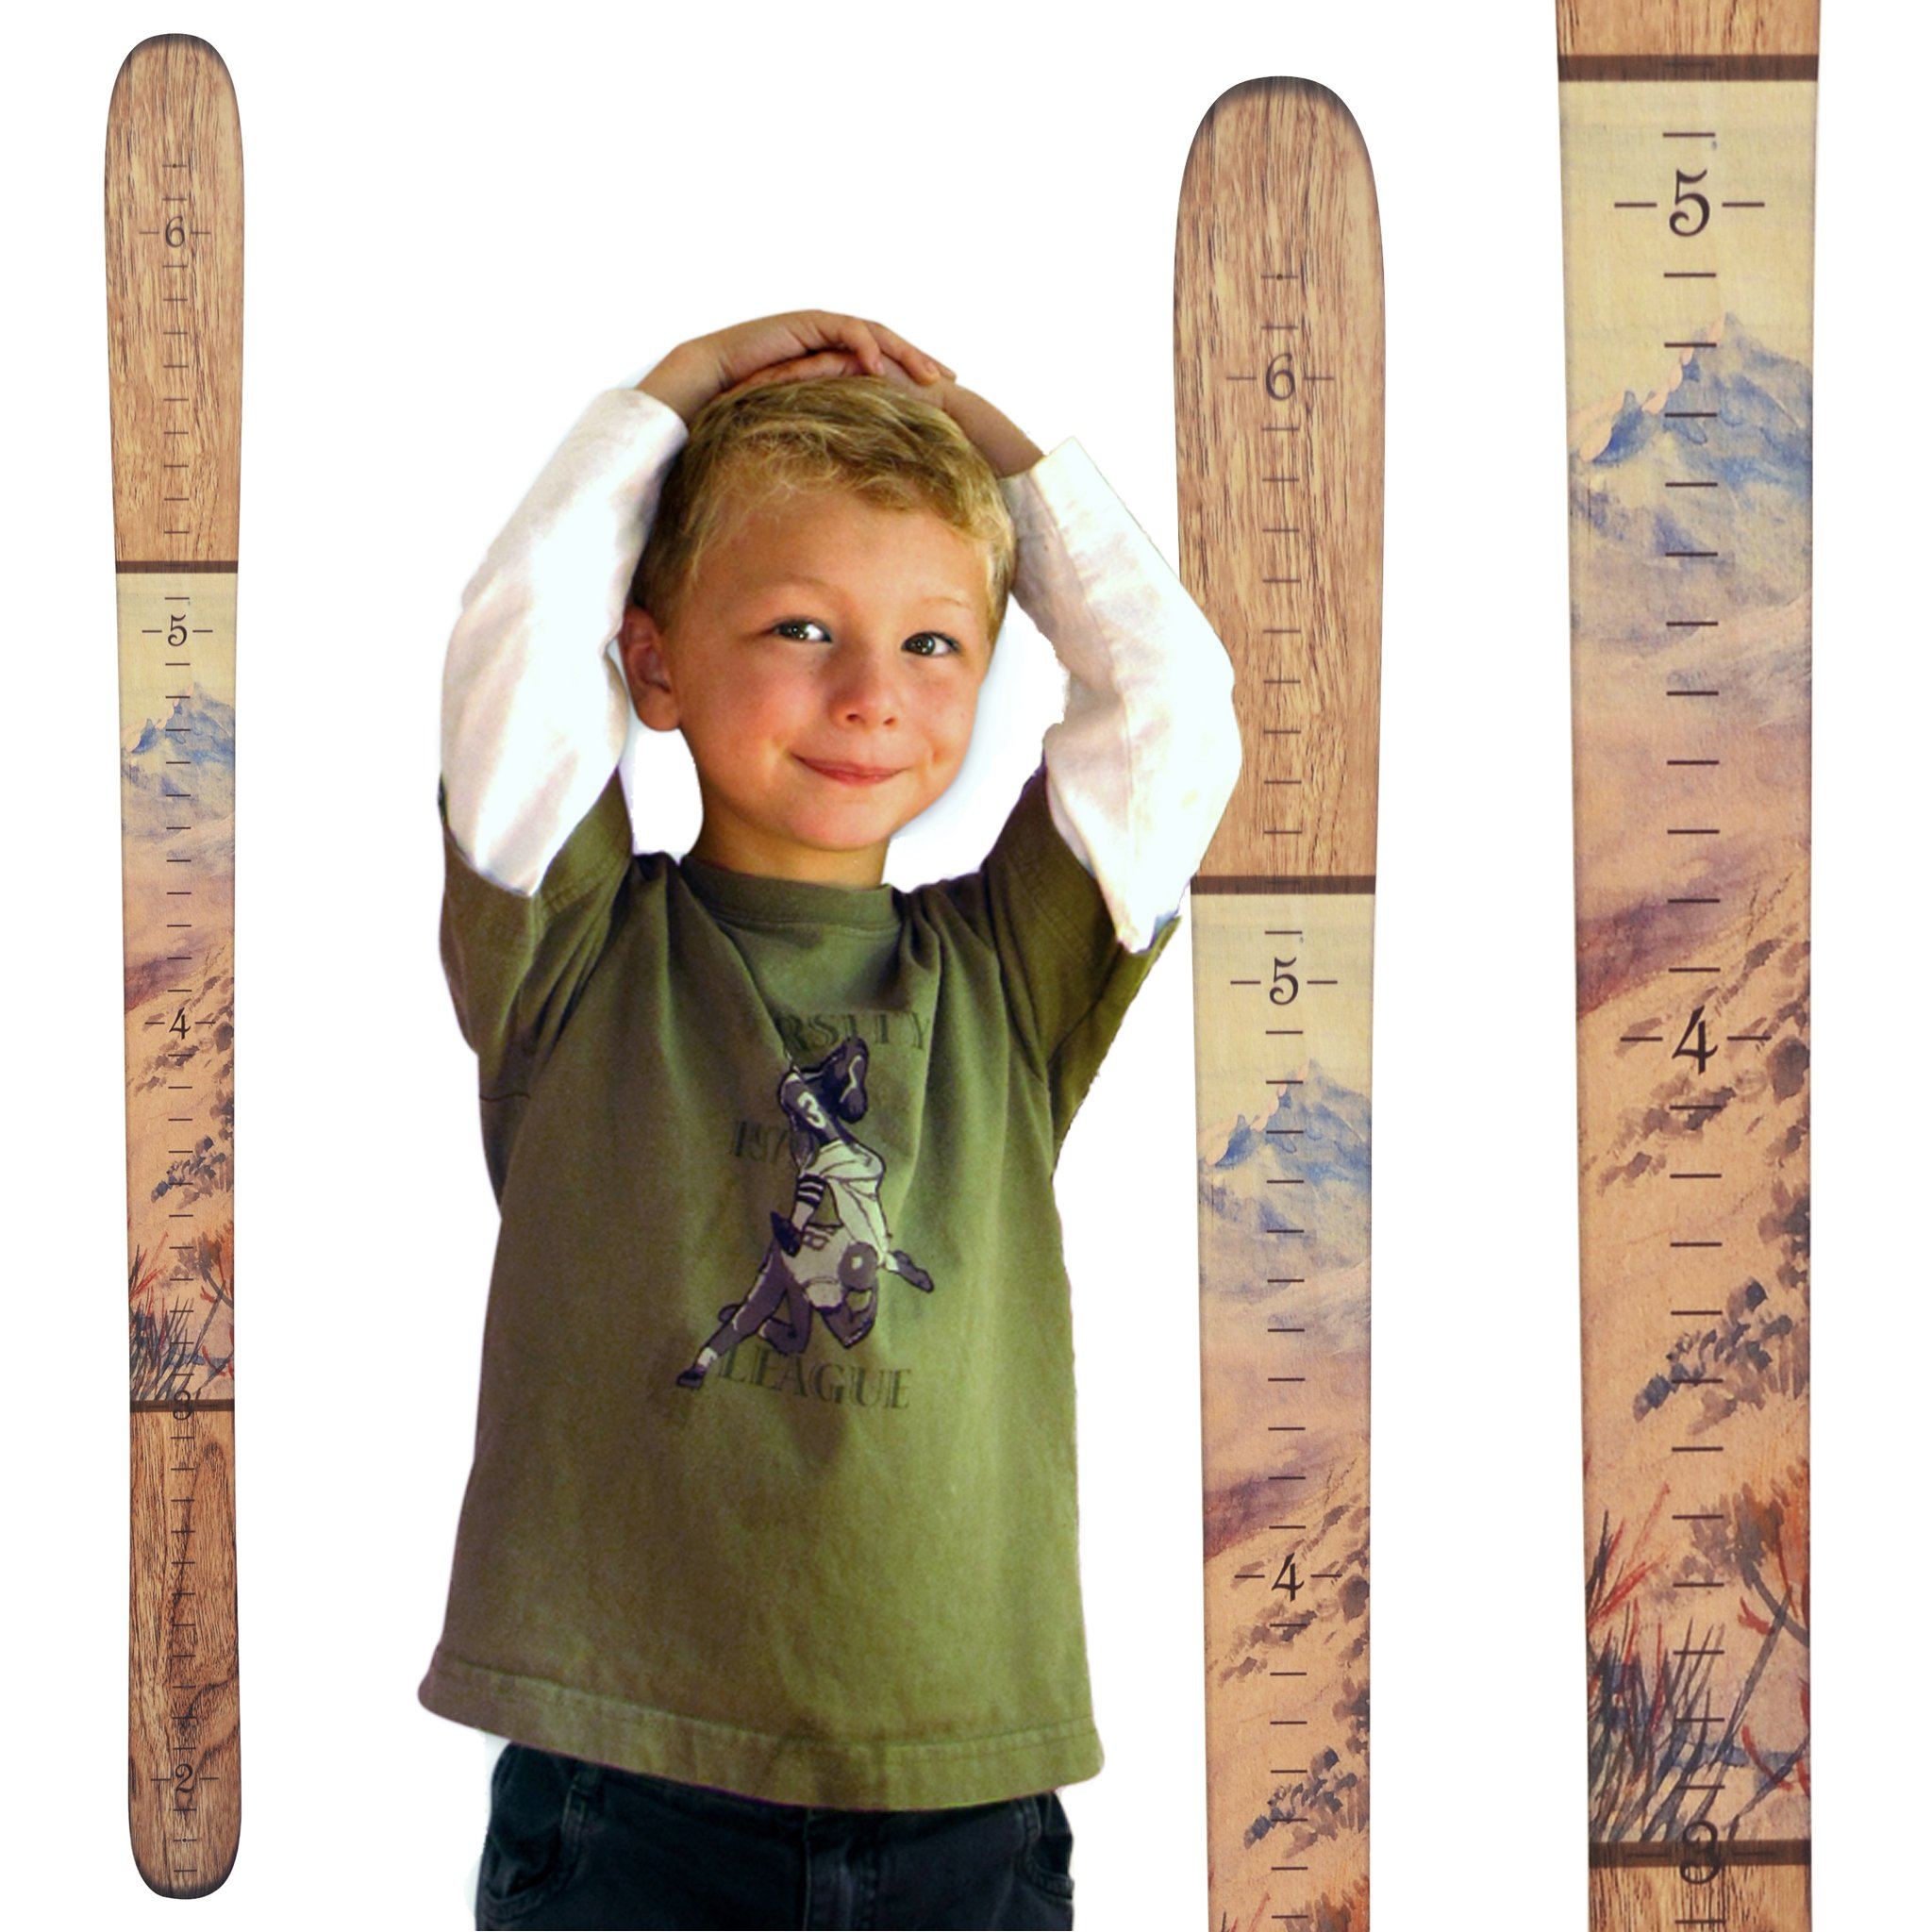 Growth Chart Art | Wooden Ski Growth Chart | Baby Skis | Ski Gifts | Wall Hanging Wood Height Chart for Measuring Kids, Children, Boys, Girls | Maple Mountain